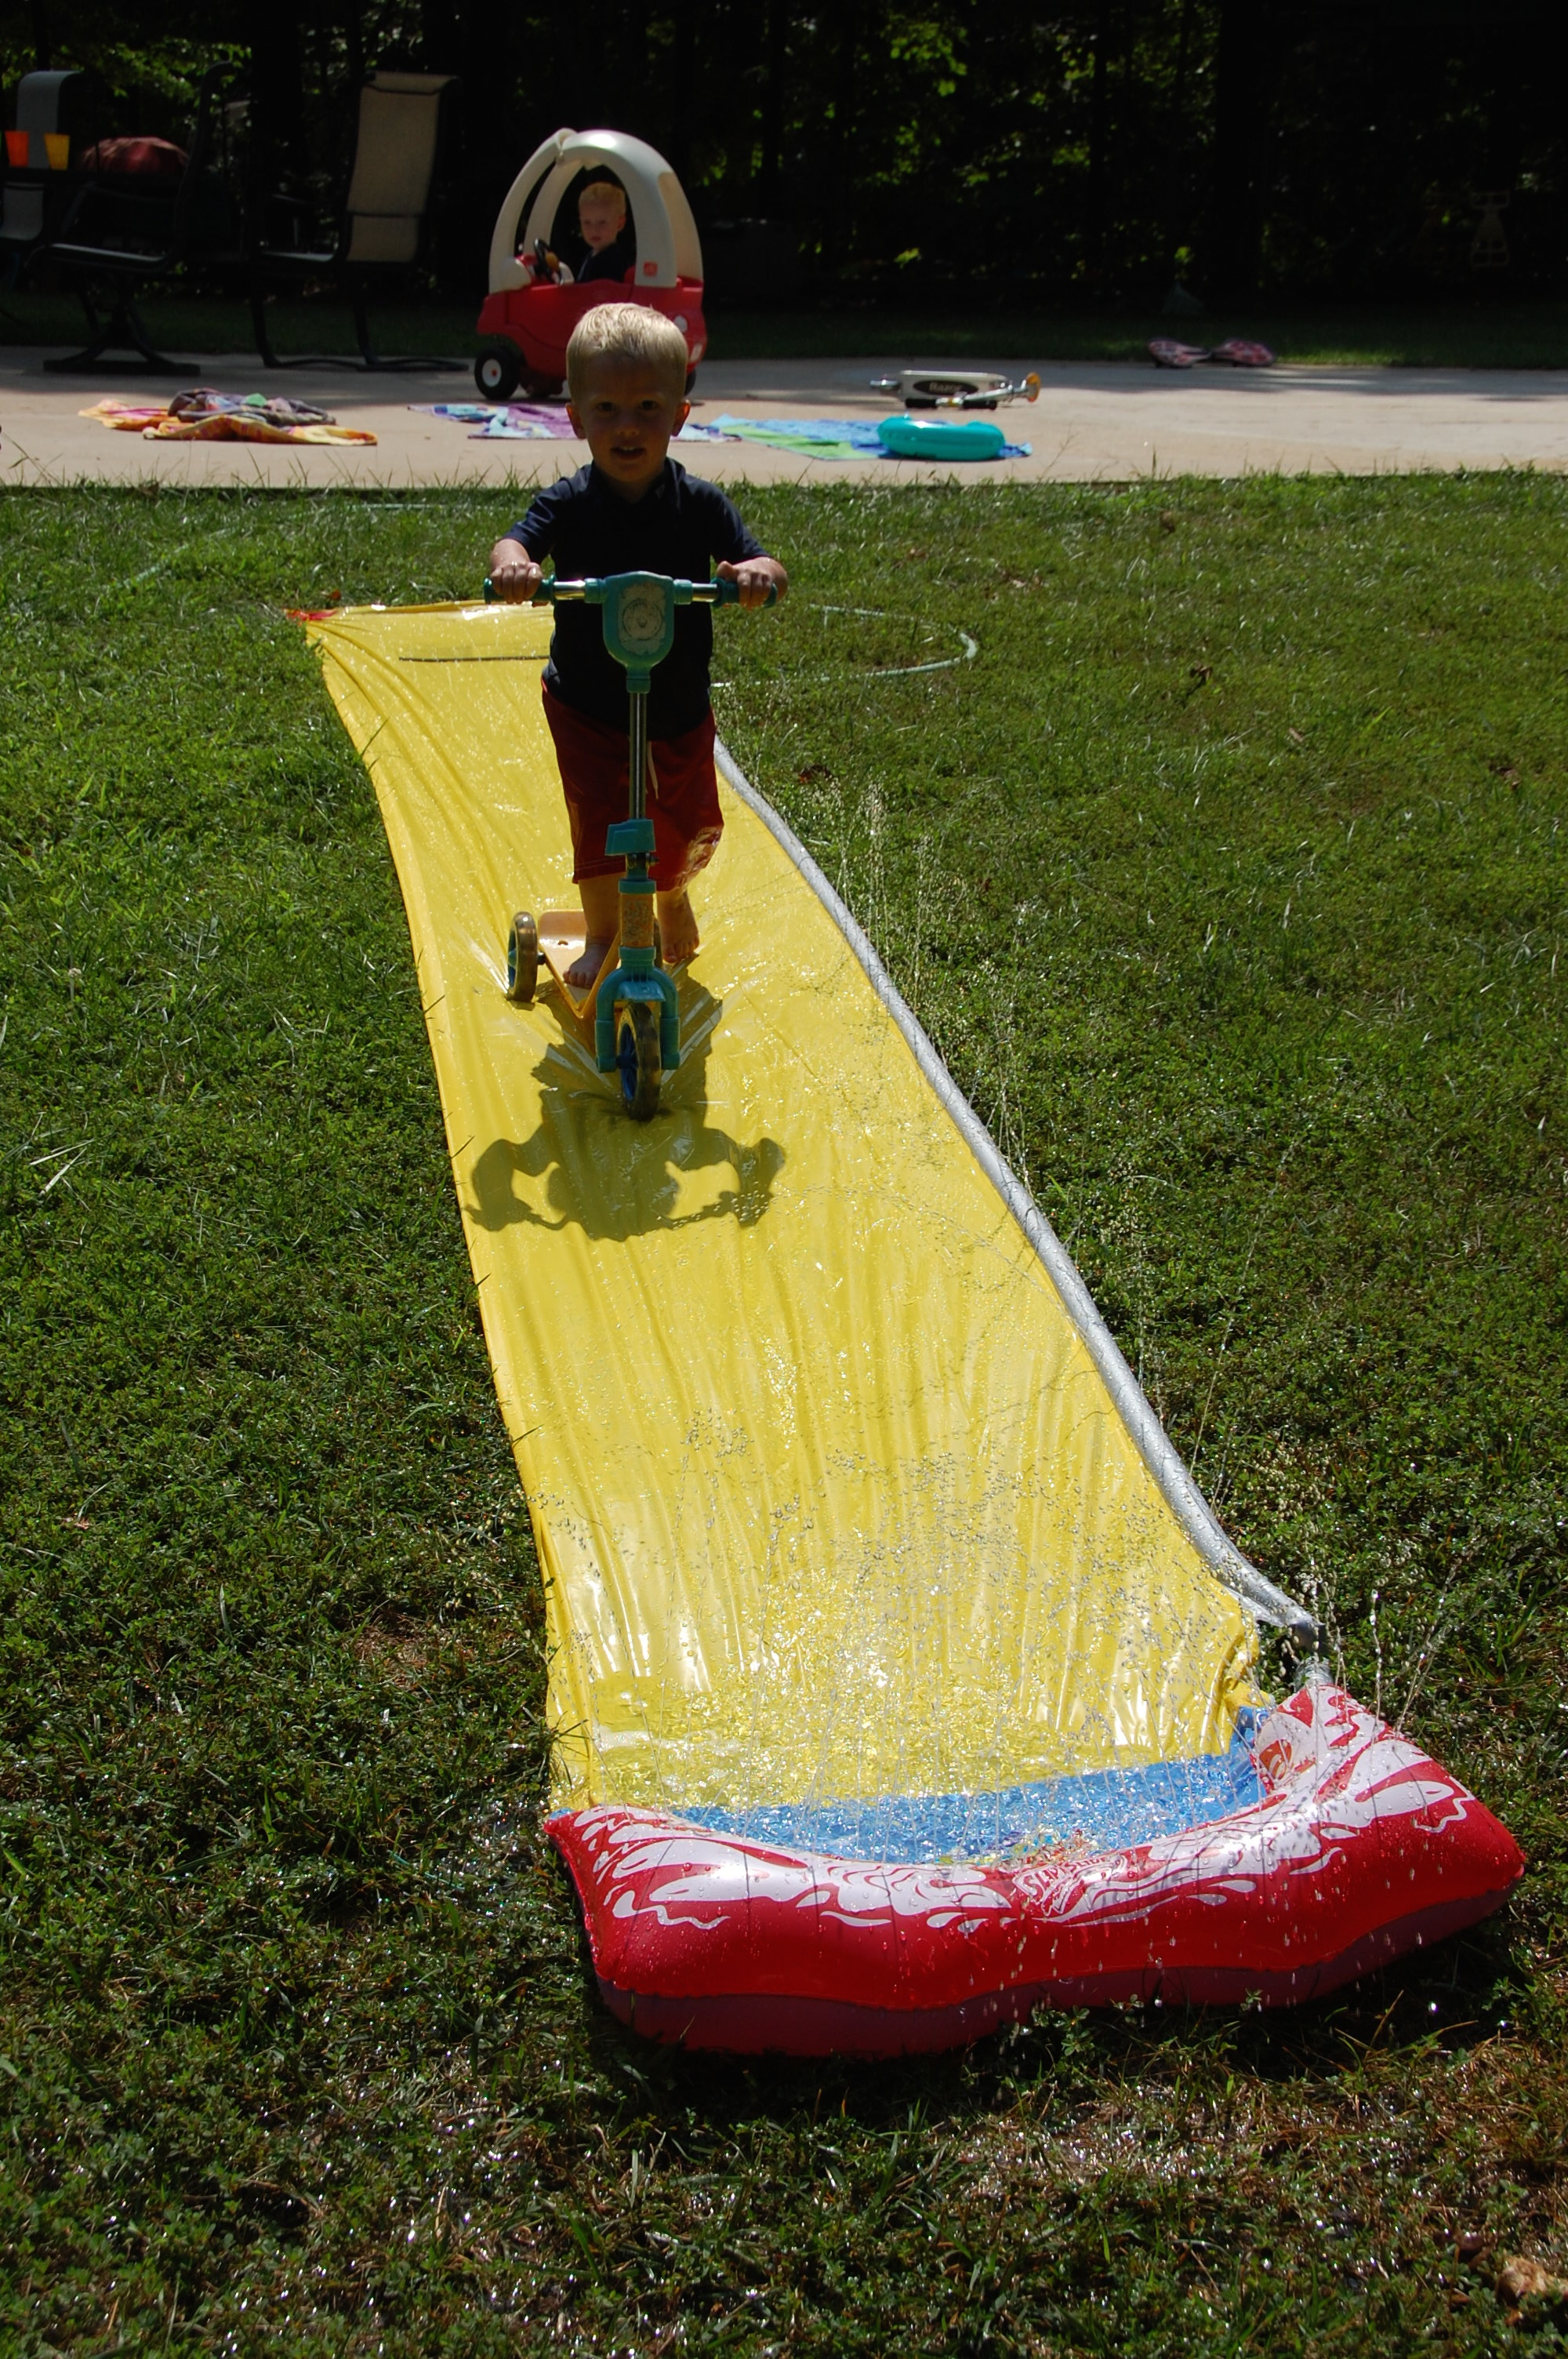 But Kolby on the other hand needed a little more excitement and started experimenting on ways to go down the slide.